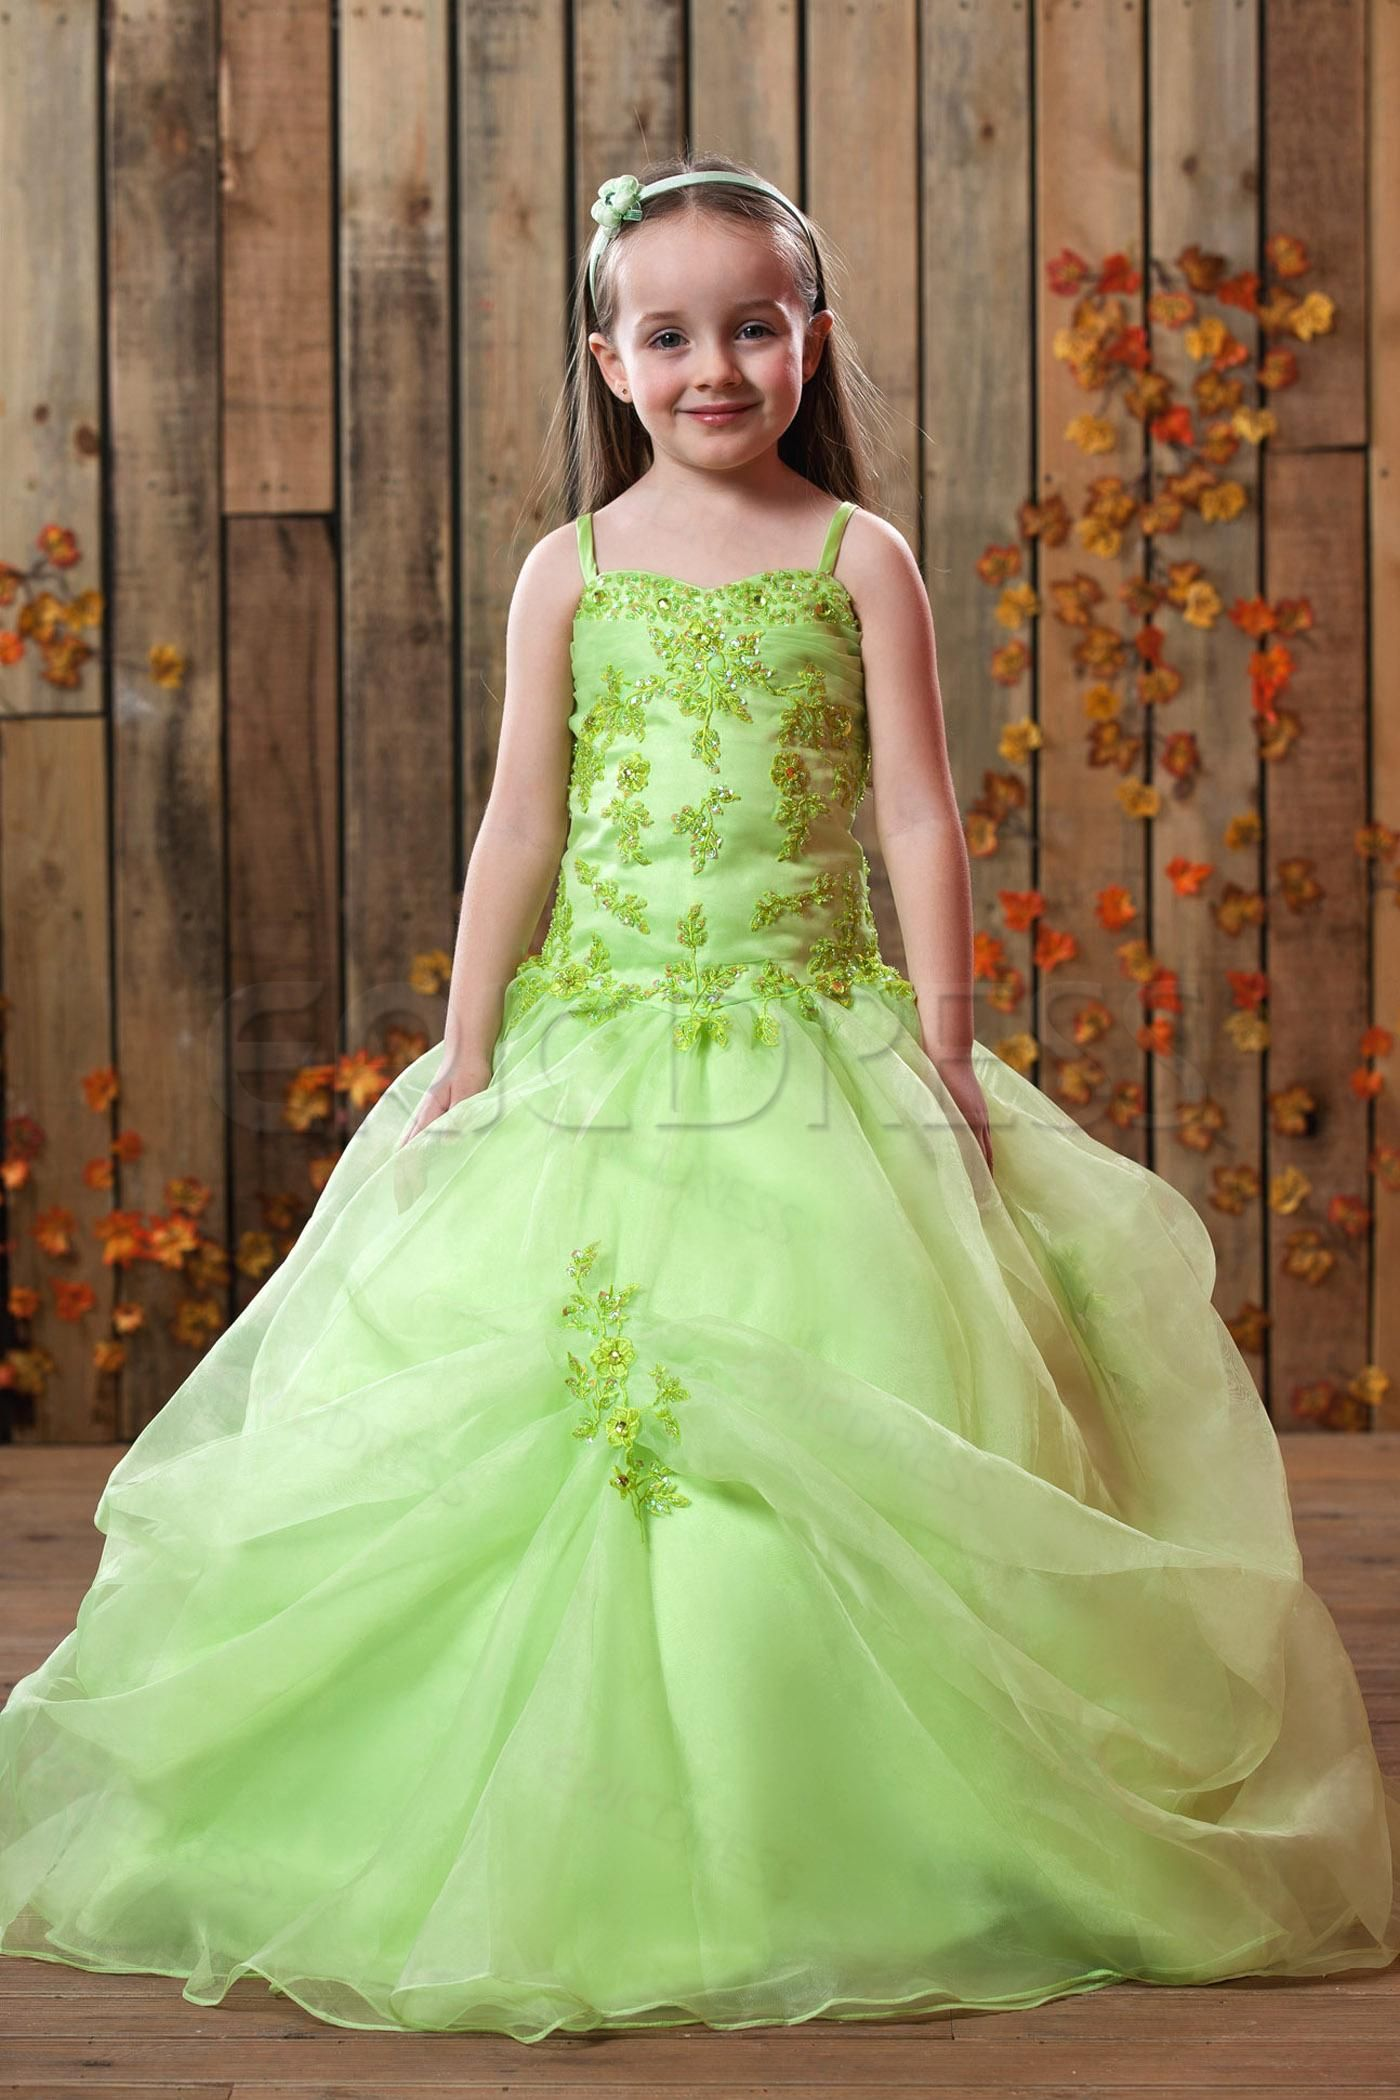 78  images about Beautiful flower girl dress on Pinterest - White ...